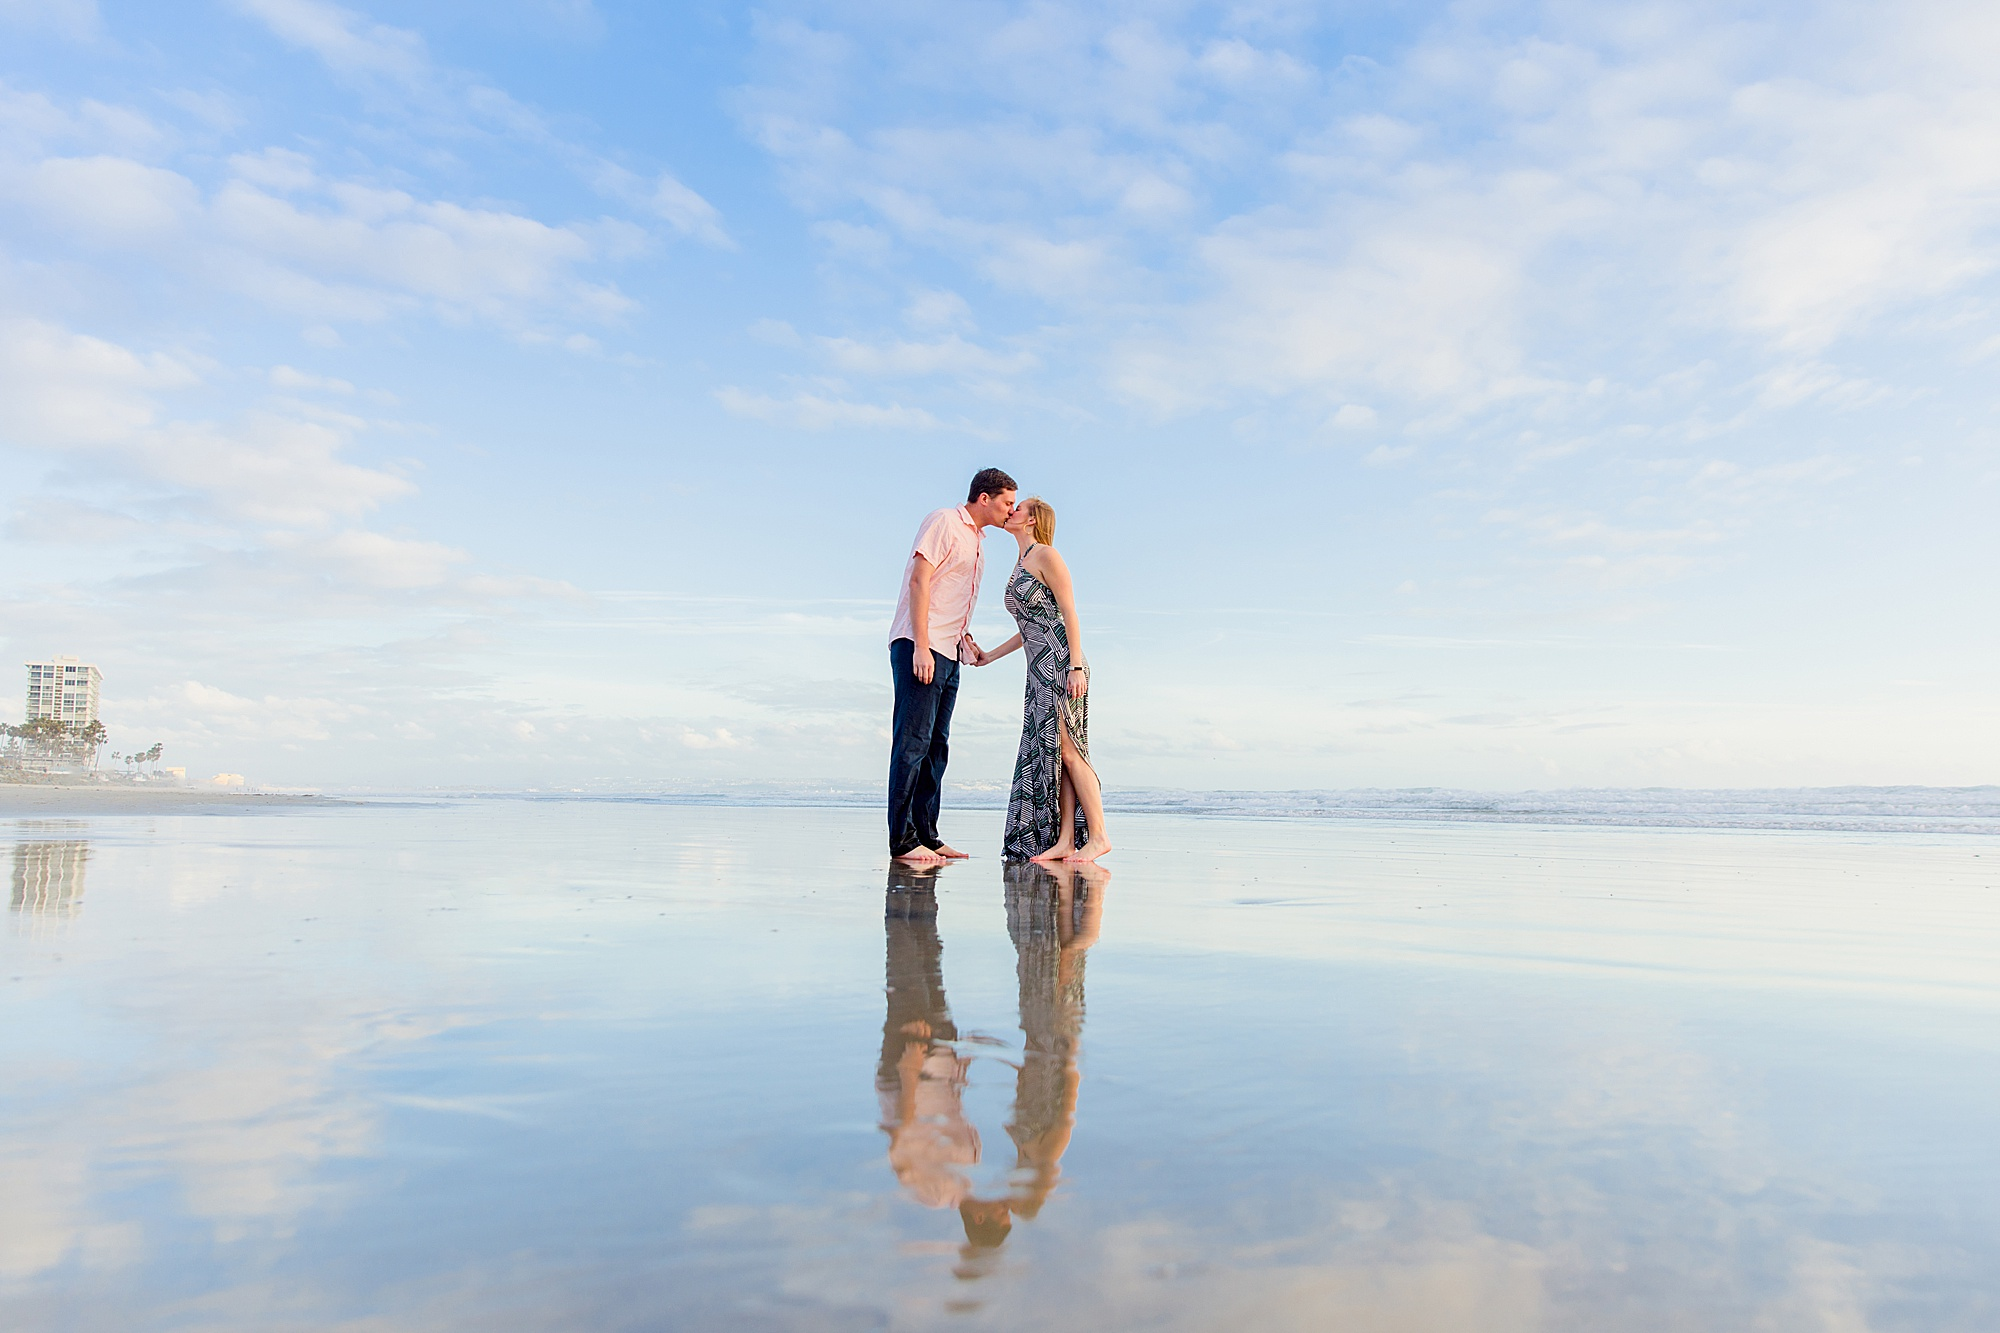 Enagegement on the Beach | San Diego Beach Photography